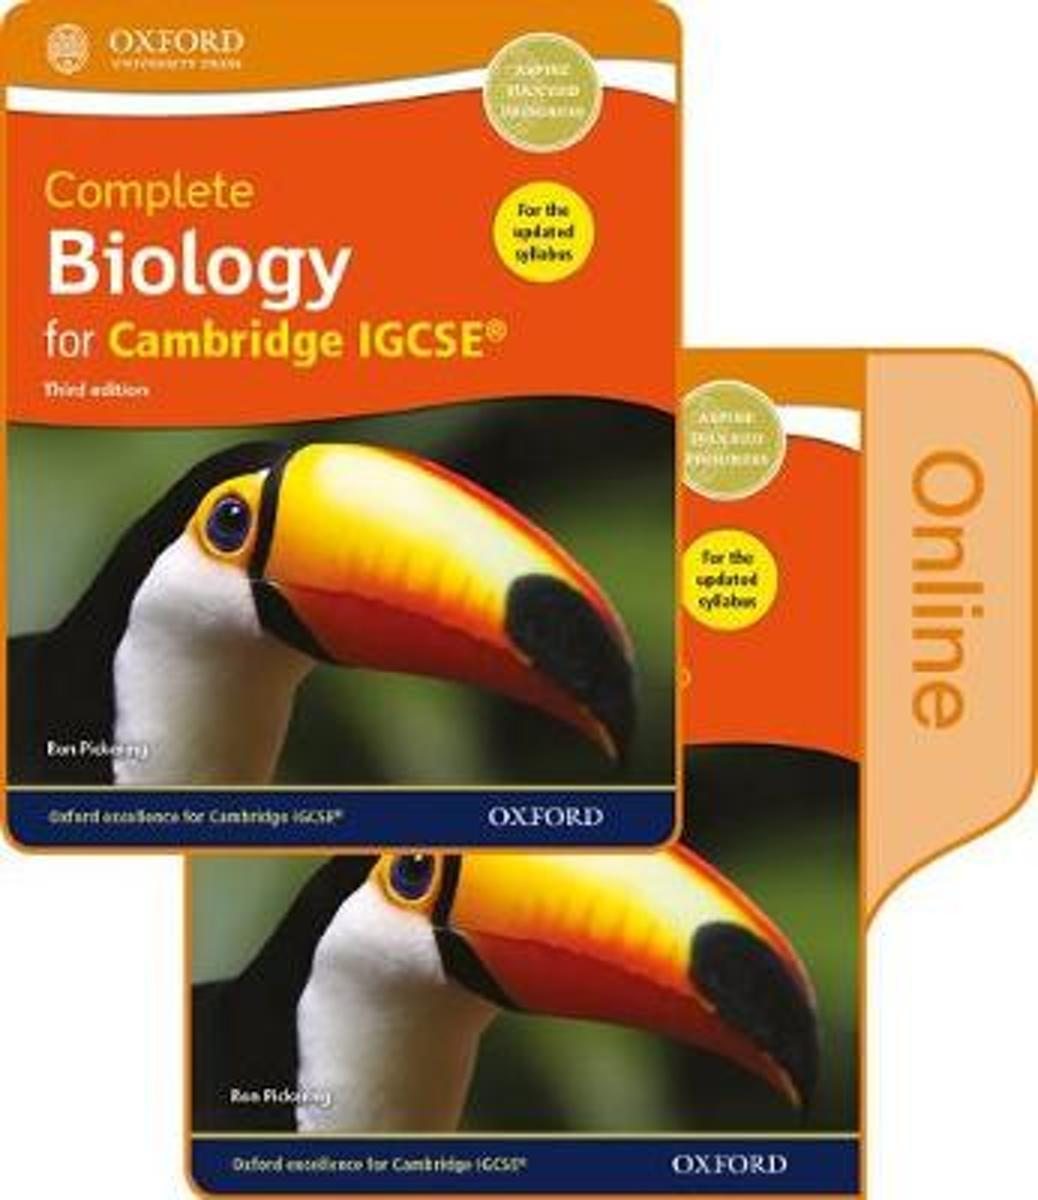 Complete Biology for Cambridge IGCSE (R) Print and Online Student Book Pack